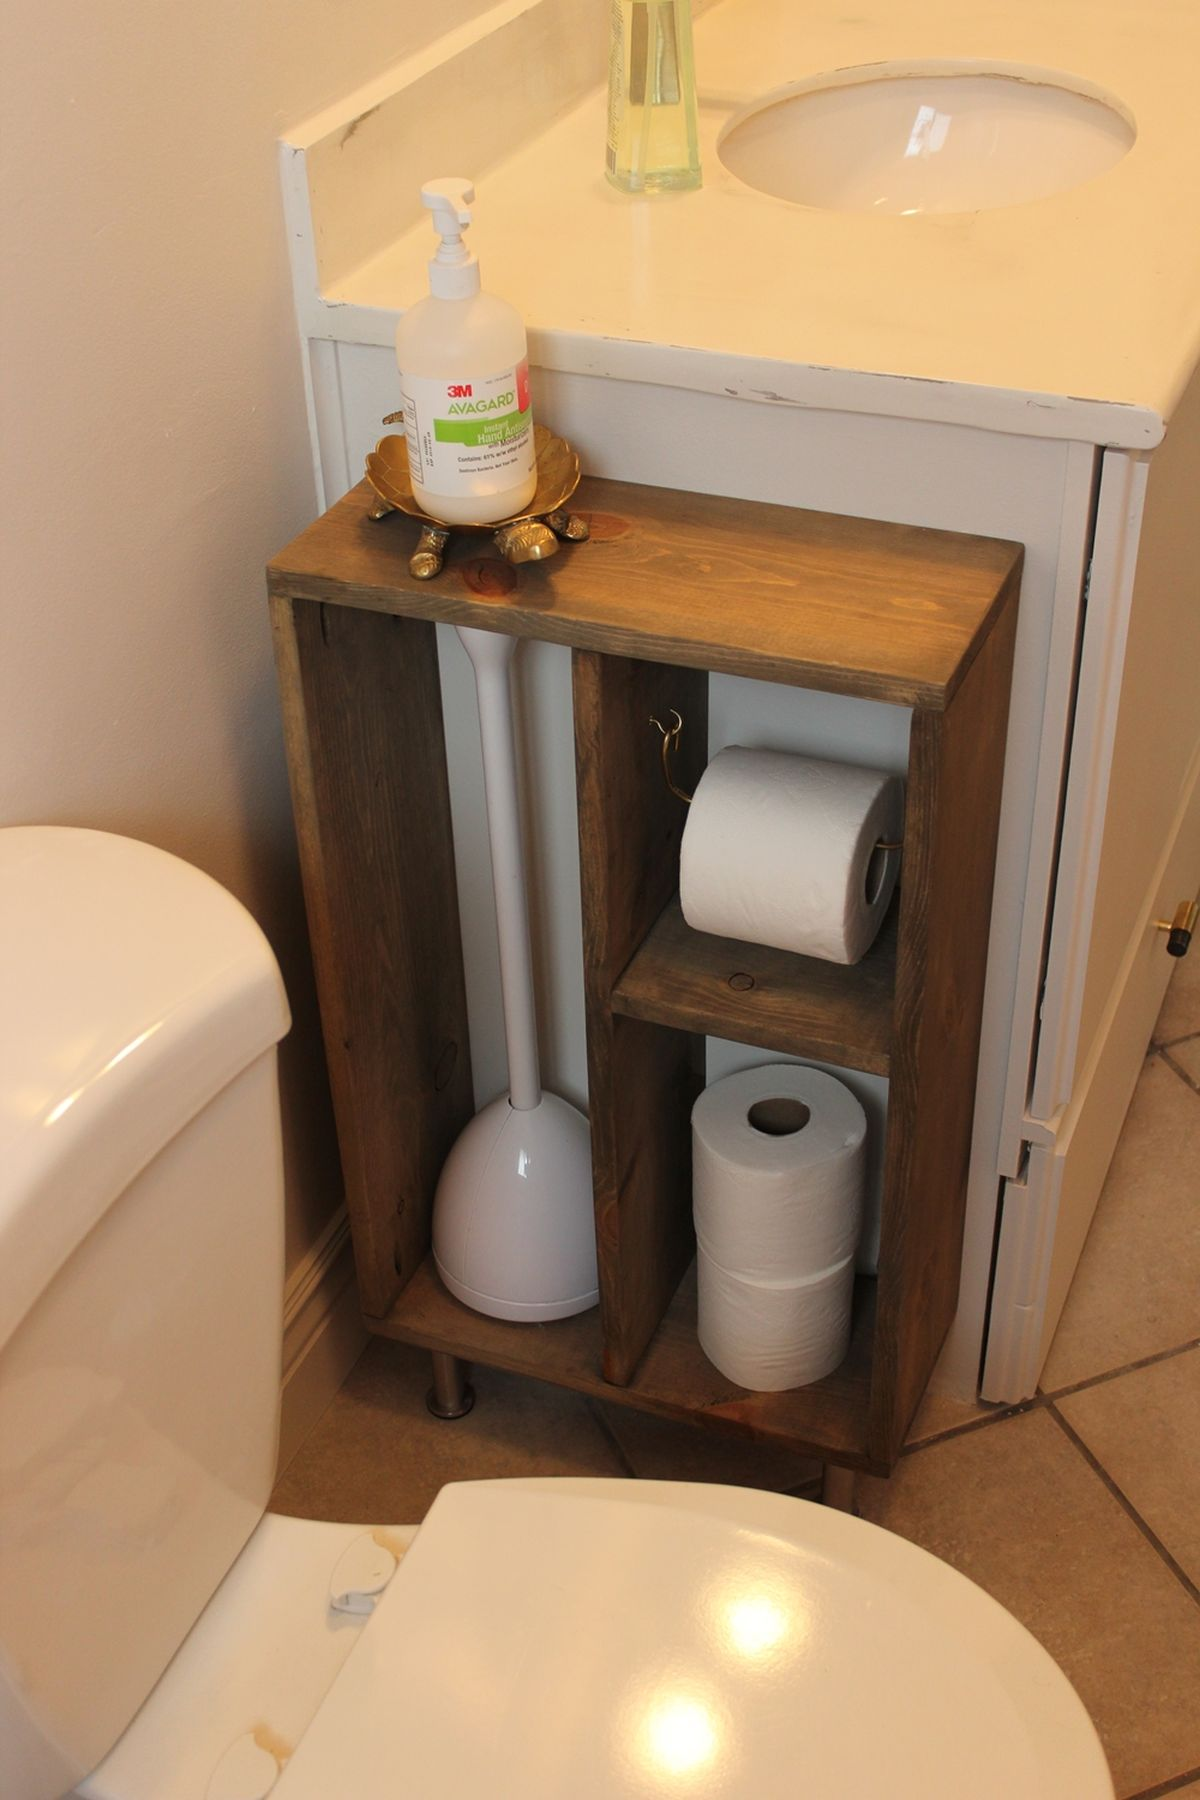 Toilet Paper Holder For Small Bathroom